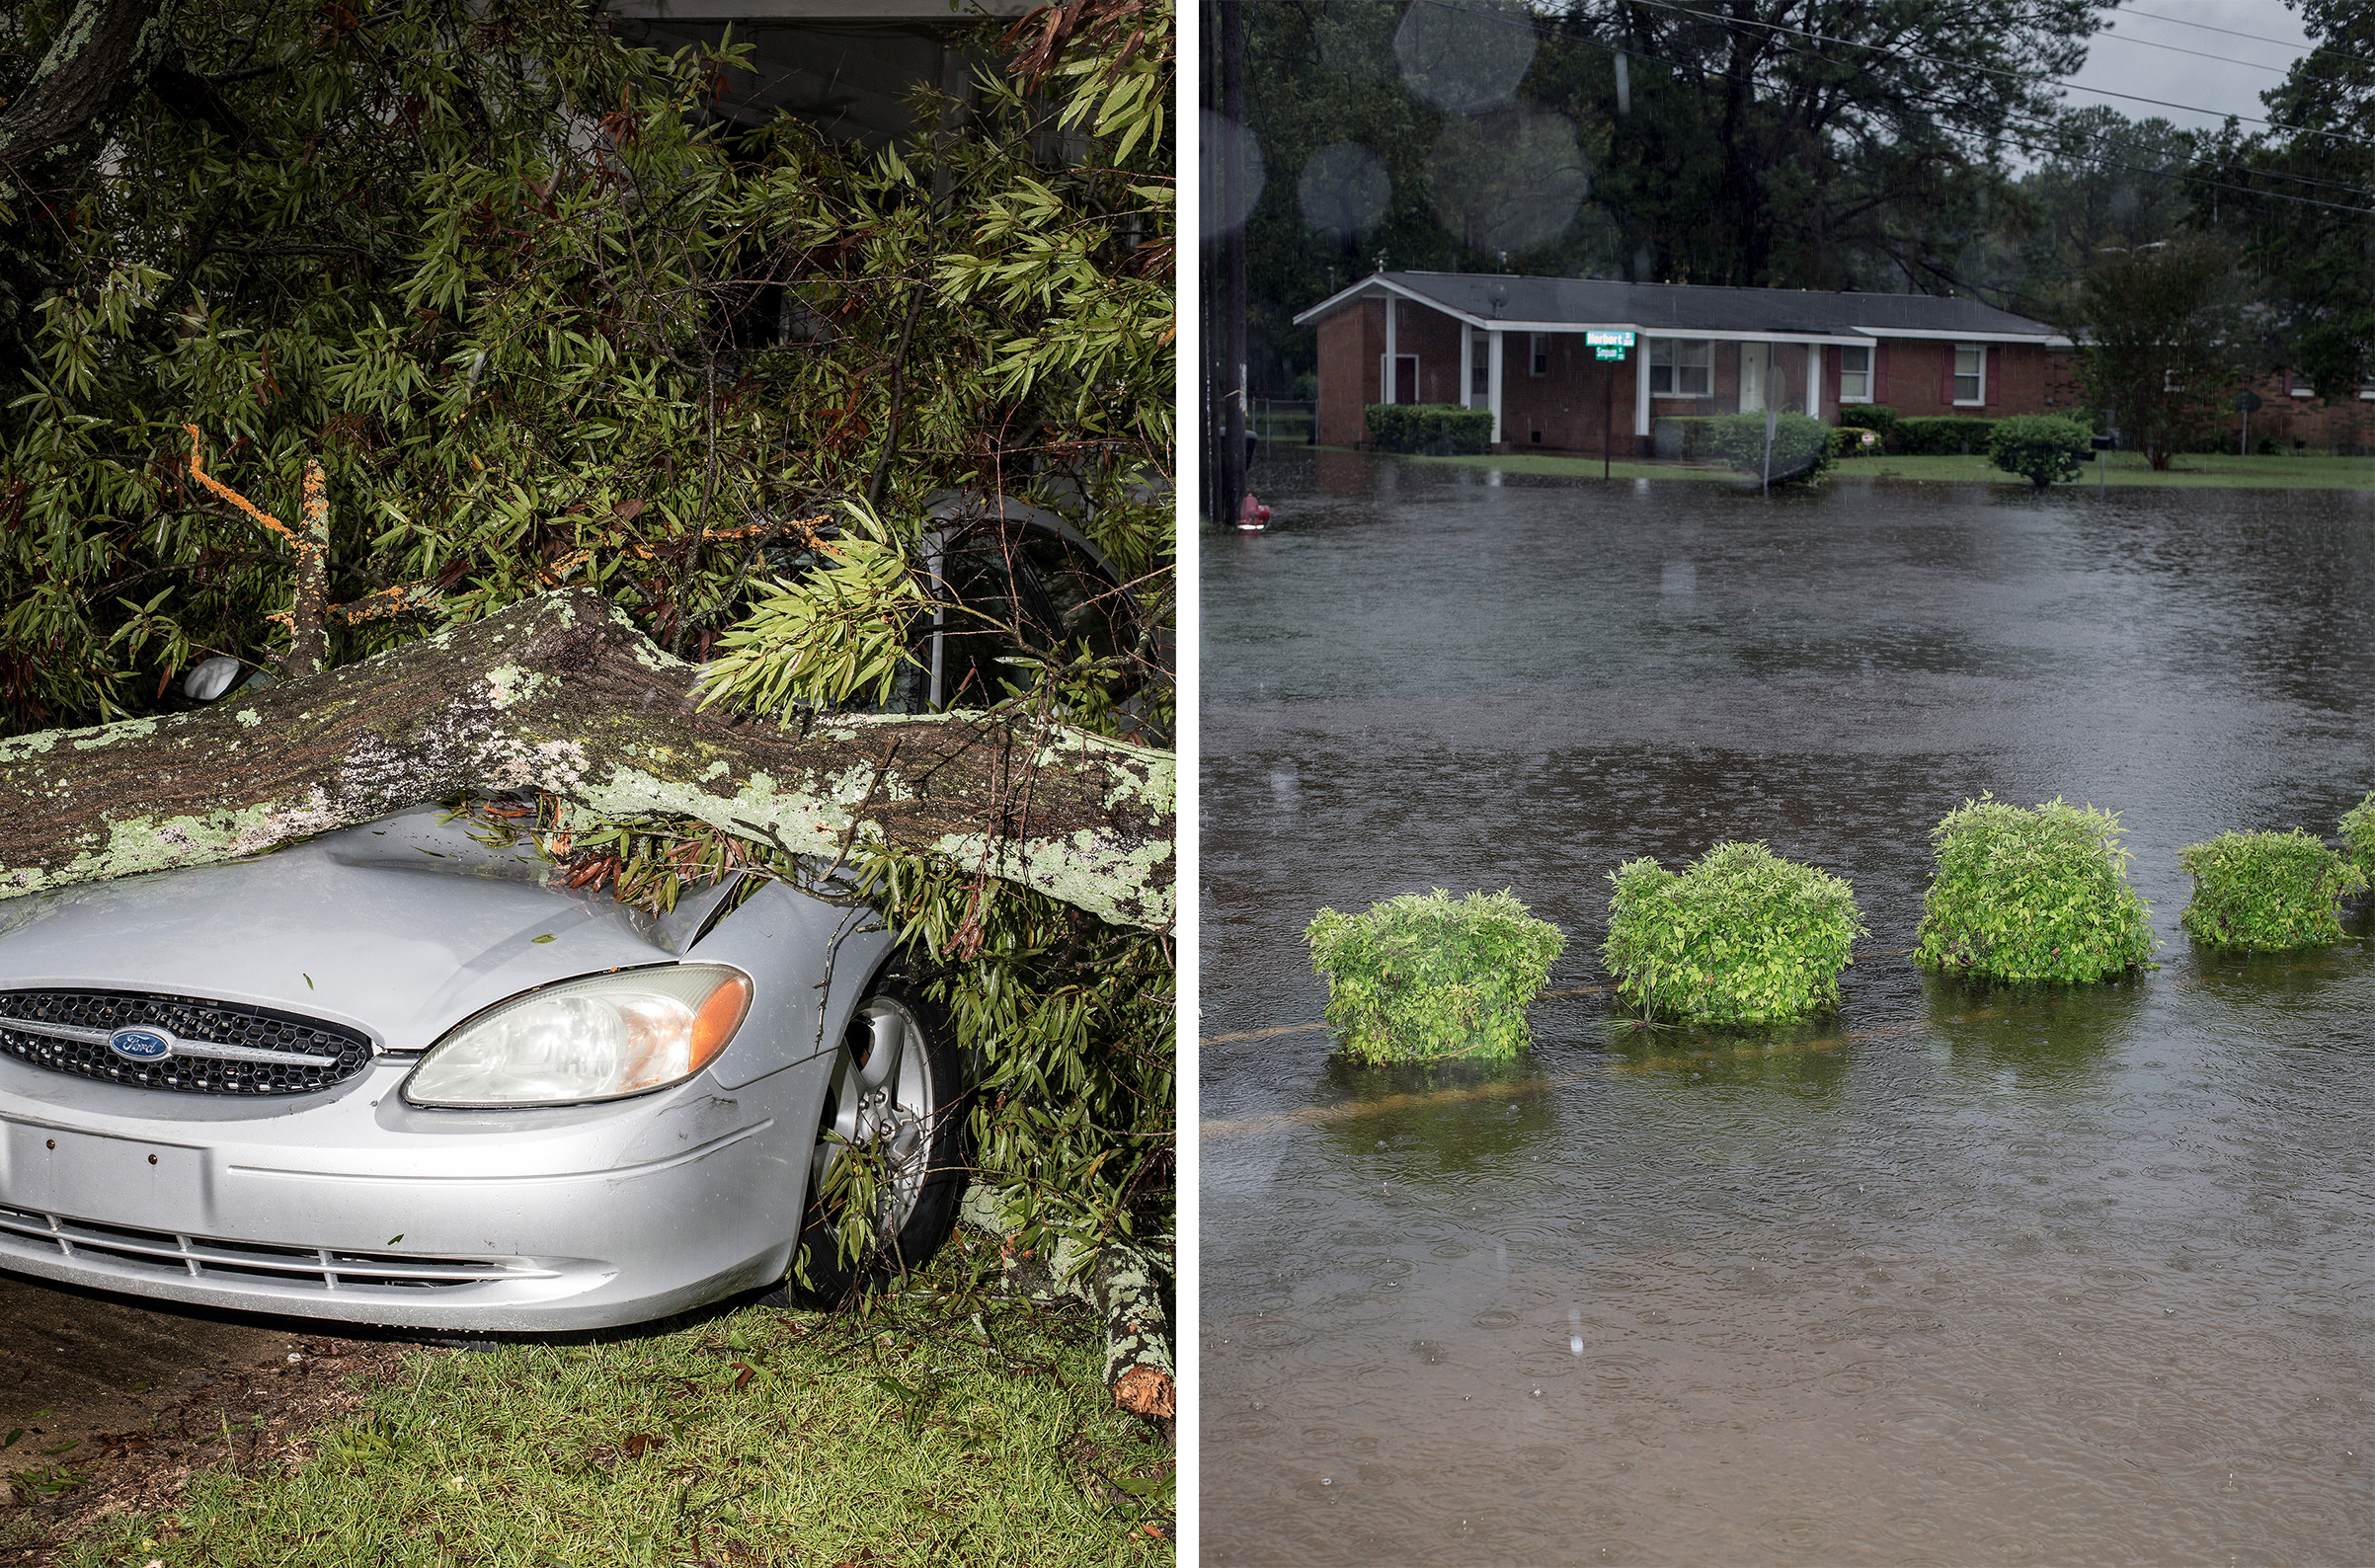 A car which was crushed by a fallen tree due to winds from Hurricane Florence in Goldsboro, N.C. on Sept. 15.; A view of Coy Coley's driveway in Goldsboro.